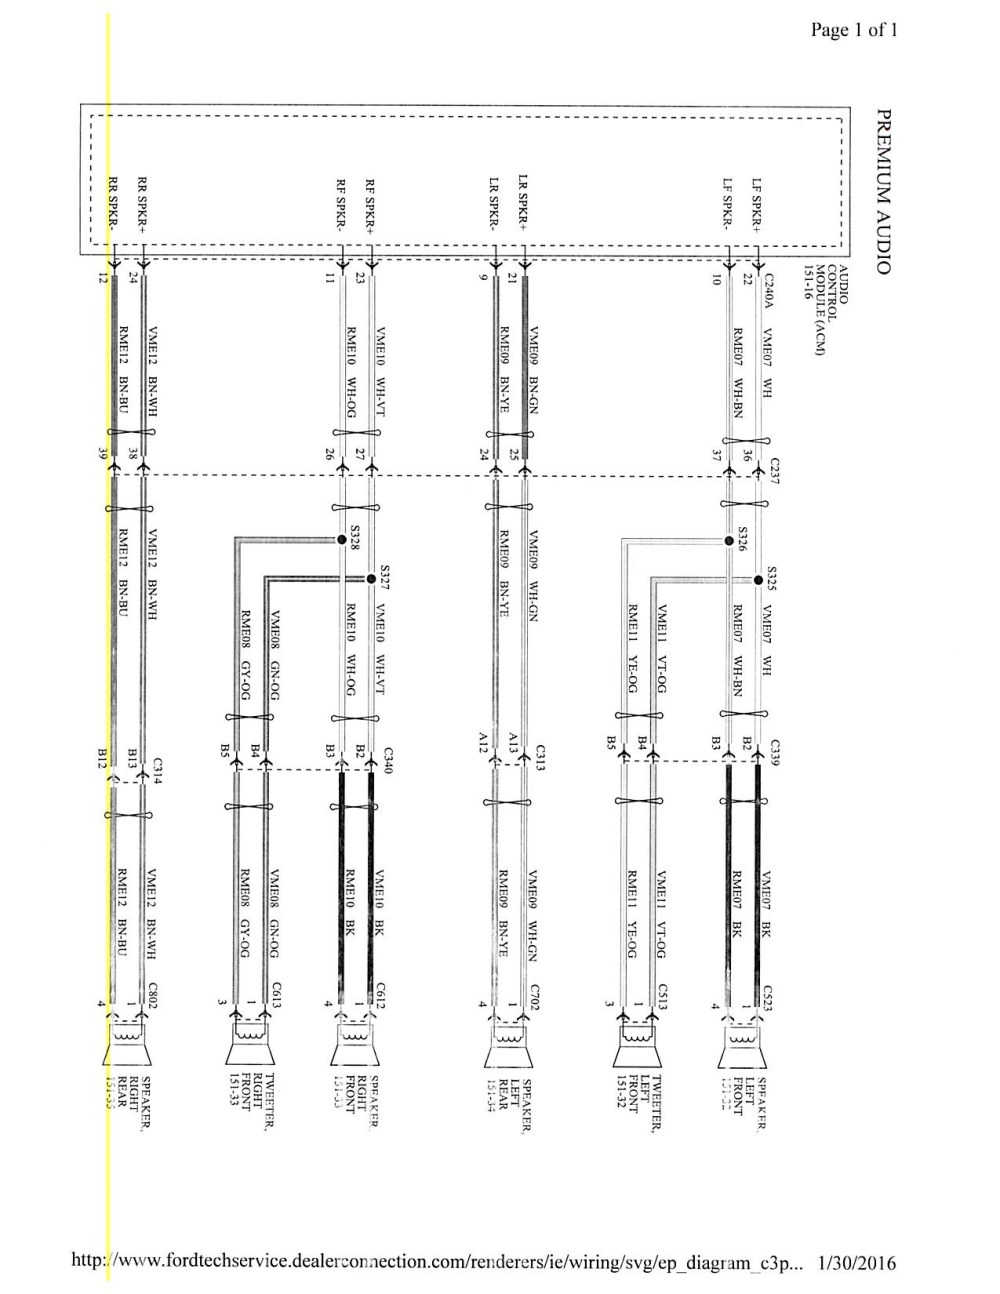 medium resolution of ford focus 3 wiring diagram simple wiring schema 2001 ford focus se radio wiring diagram 2001 ford focus radio wiring diagram